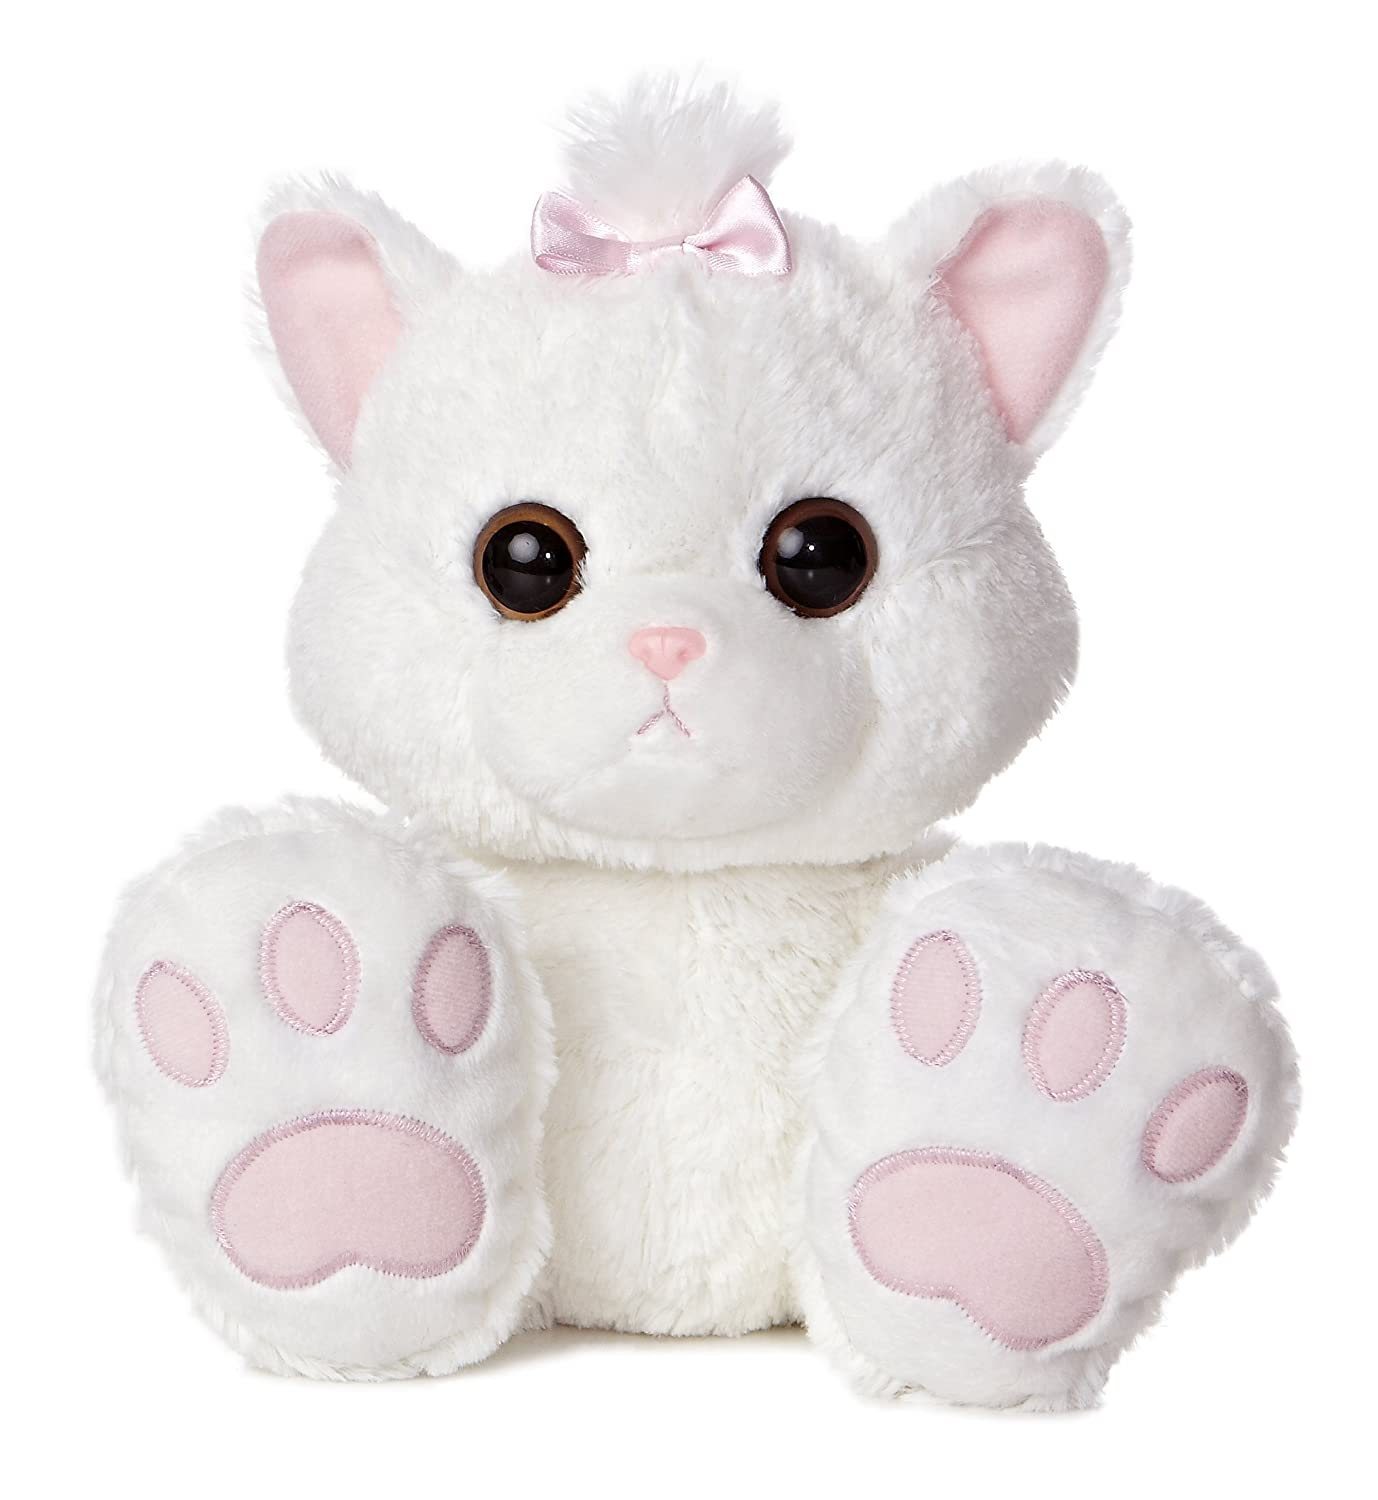 ¡No dudes! ¡Compra ahora! Aurora World World World Taddle Toes Frothy Cat Plush, 10 Tall by Aurora World  calidad fantástica